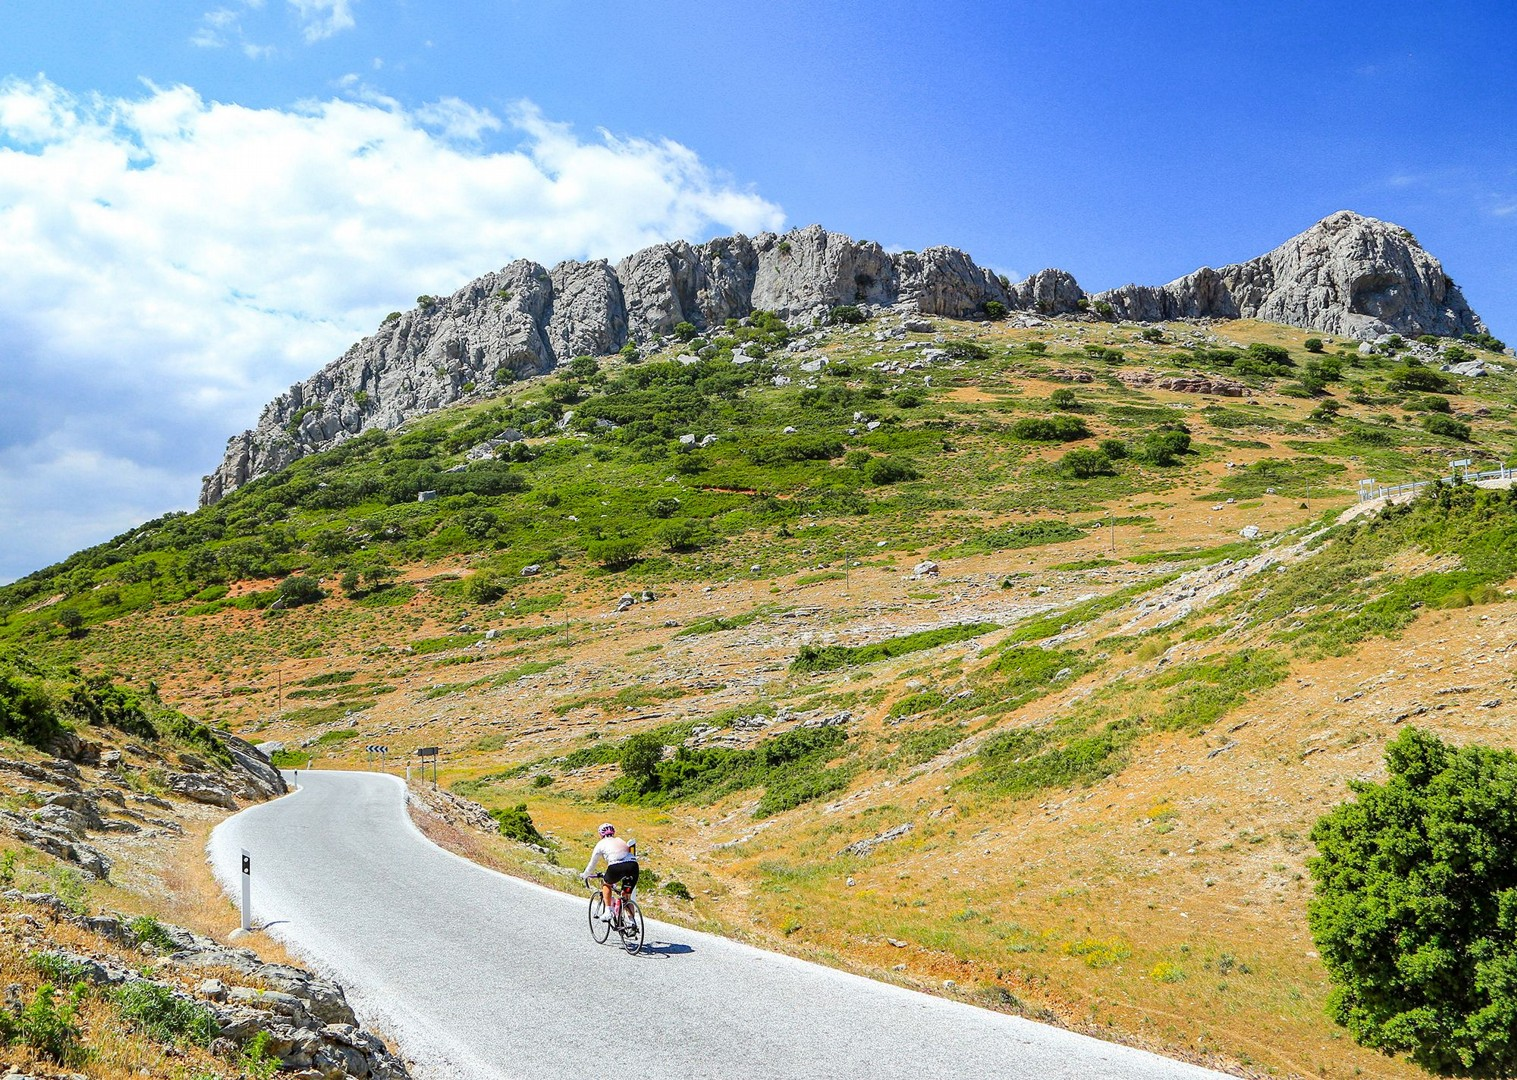 road-cycling-holiday-spain-basque-country-to-andalucia-north-to-south-16-days-trip.jpg - Spain - Basque Country to Andalucia - North to South (16 Days) - Guided Road Cycling Holiday - Road Cycling